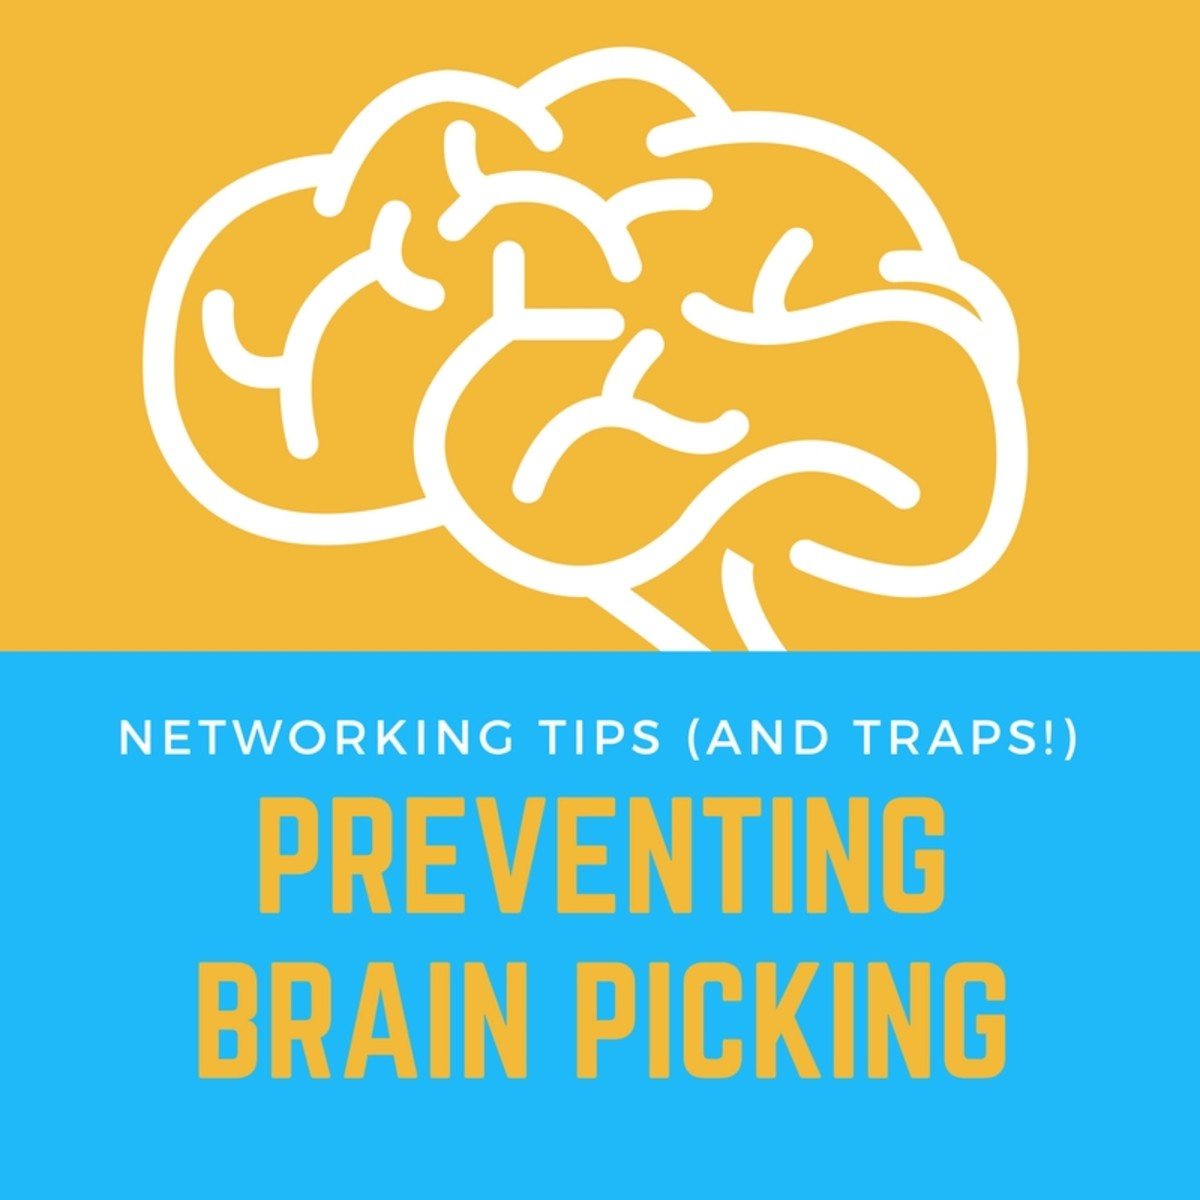 Get some advice about avoiding traps during networking events.